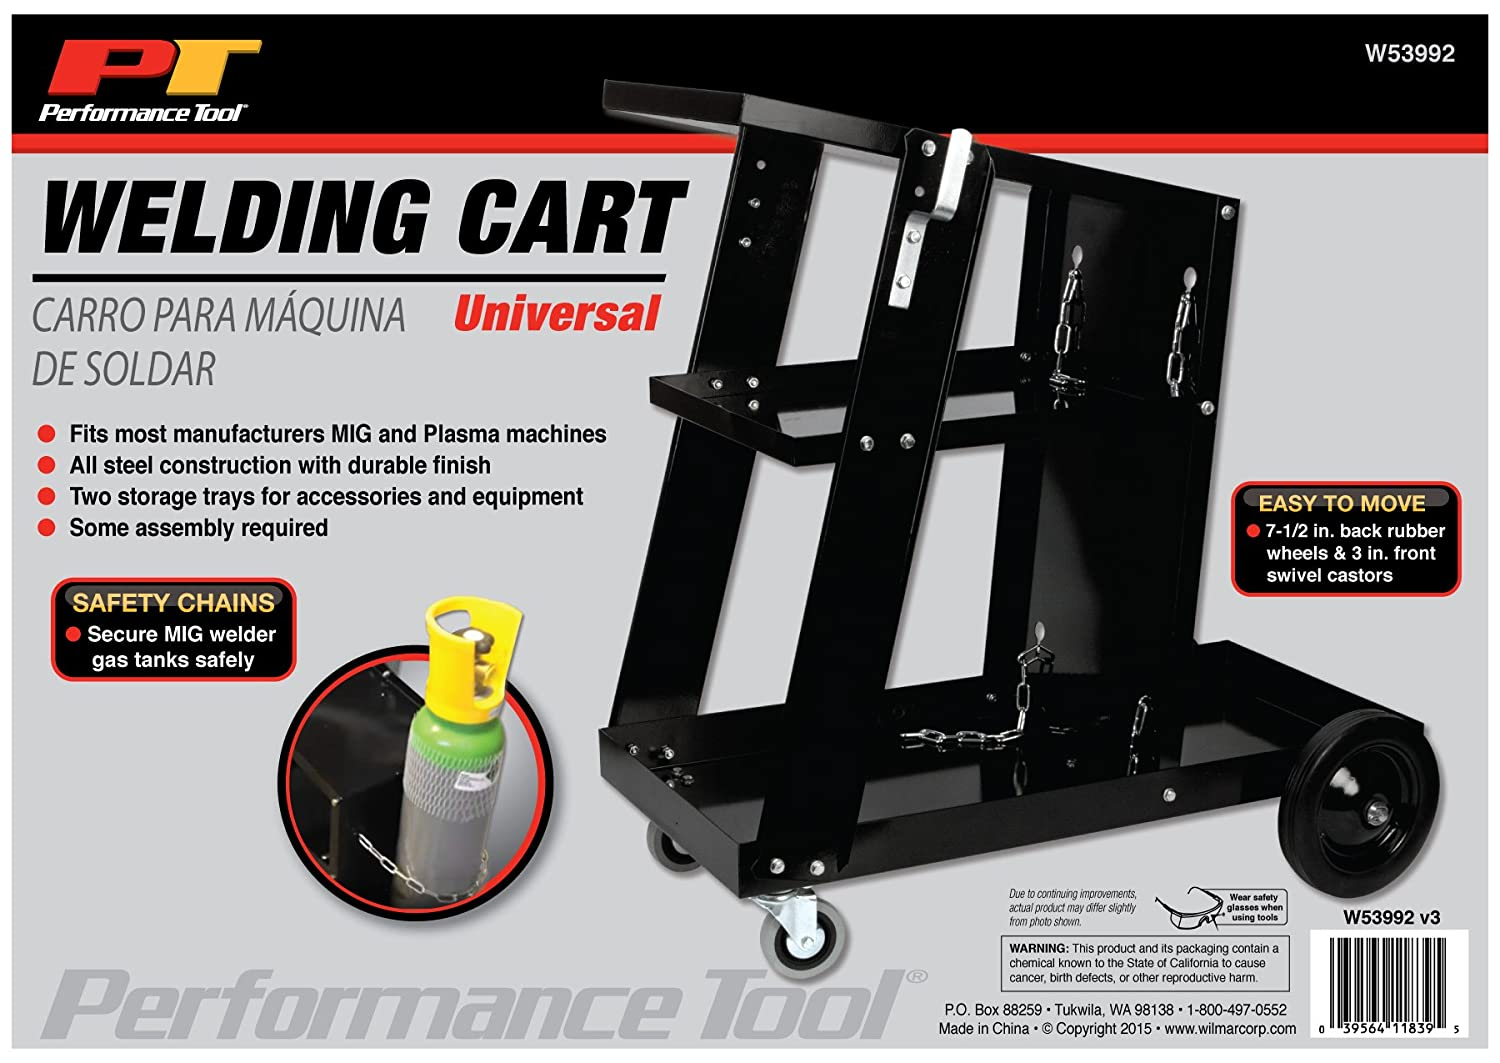 Amazon.com: Performance Tool W53992 Welding Cart, Universal: Home Improvement